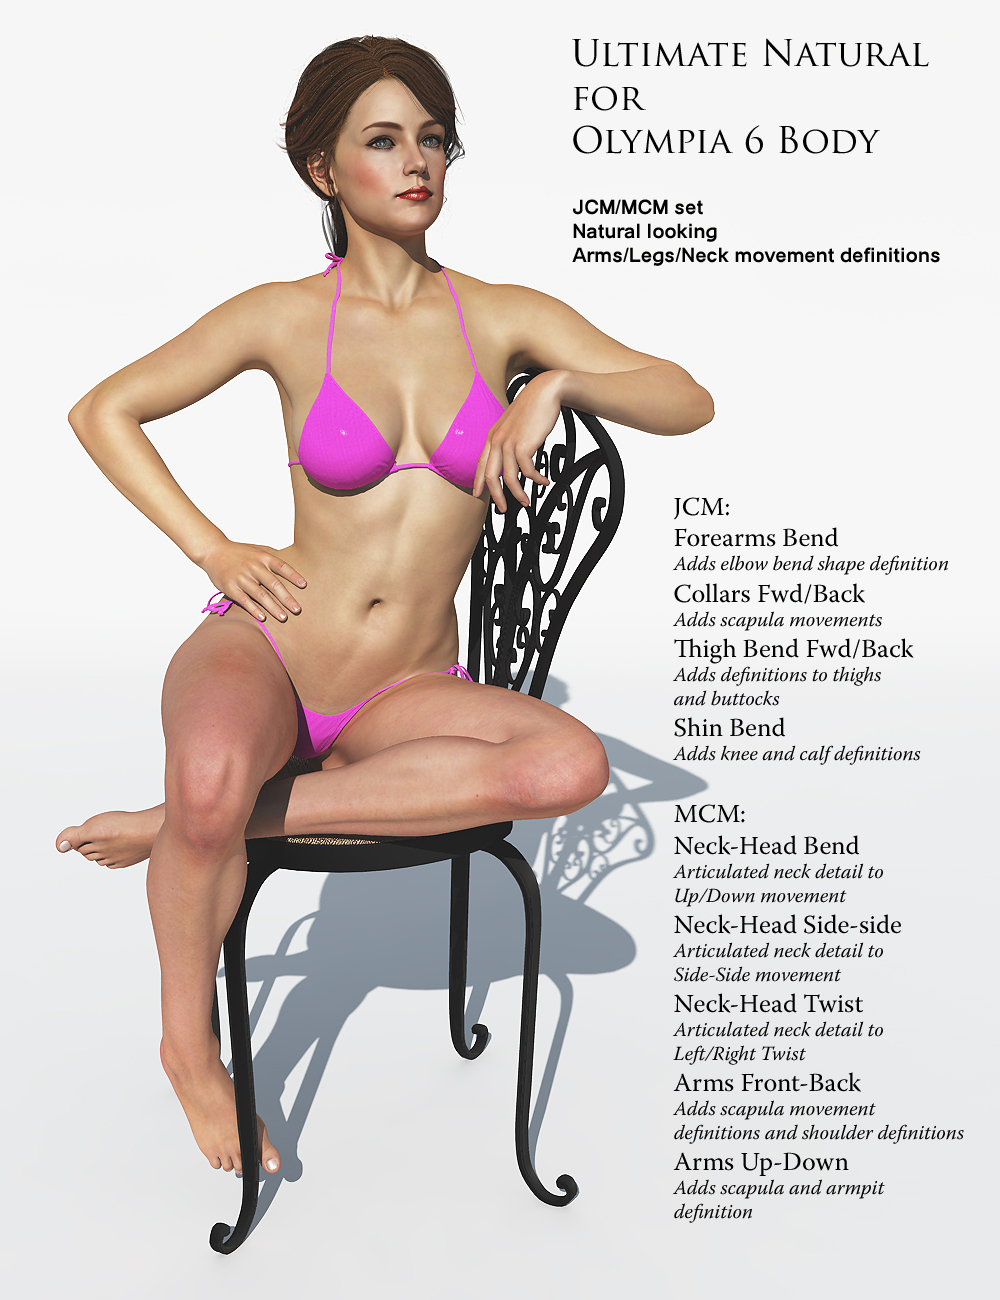 Ultimate Natural for Olympia 6 Body by: K.H. Image Studio, 3D Models by Daz 3D